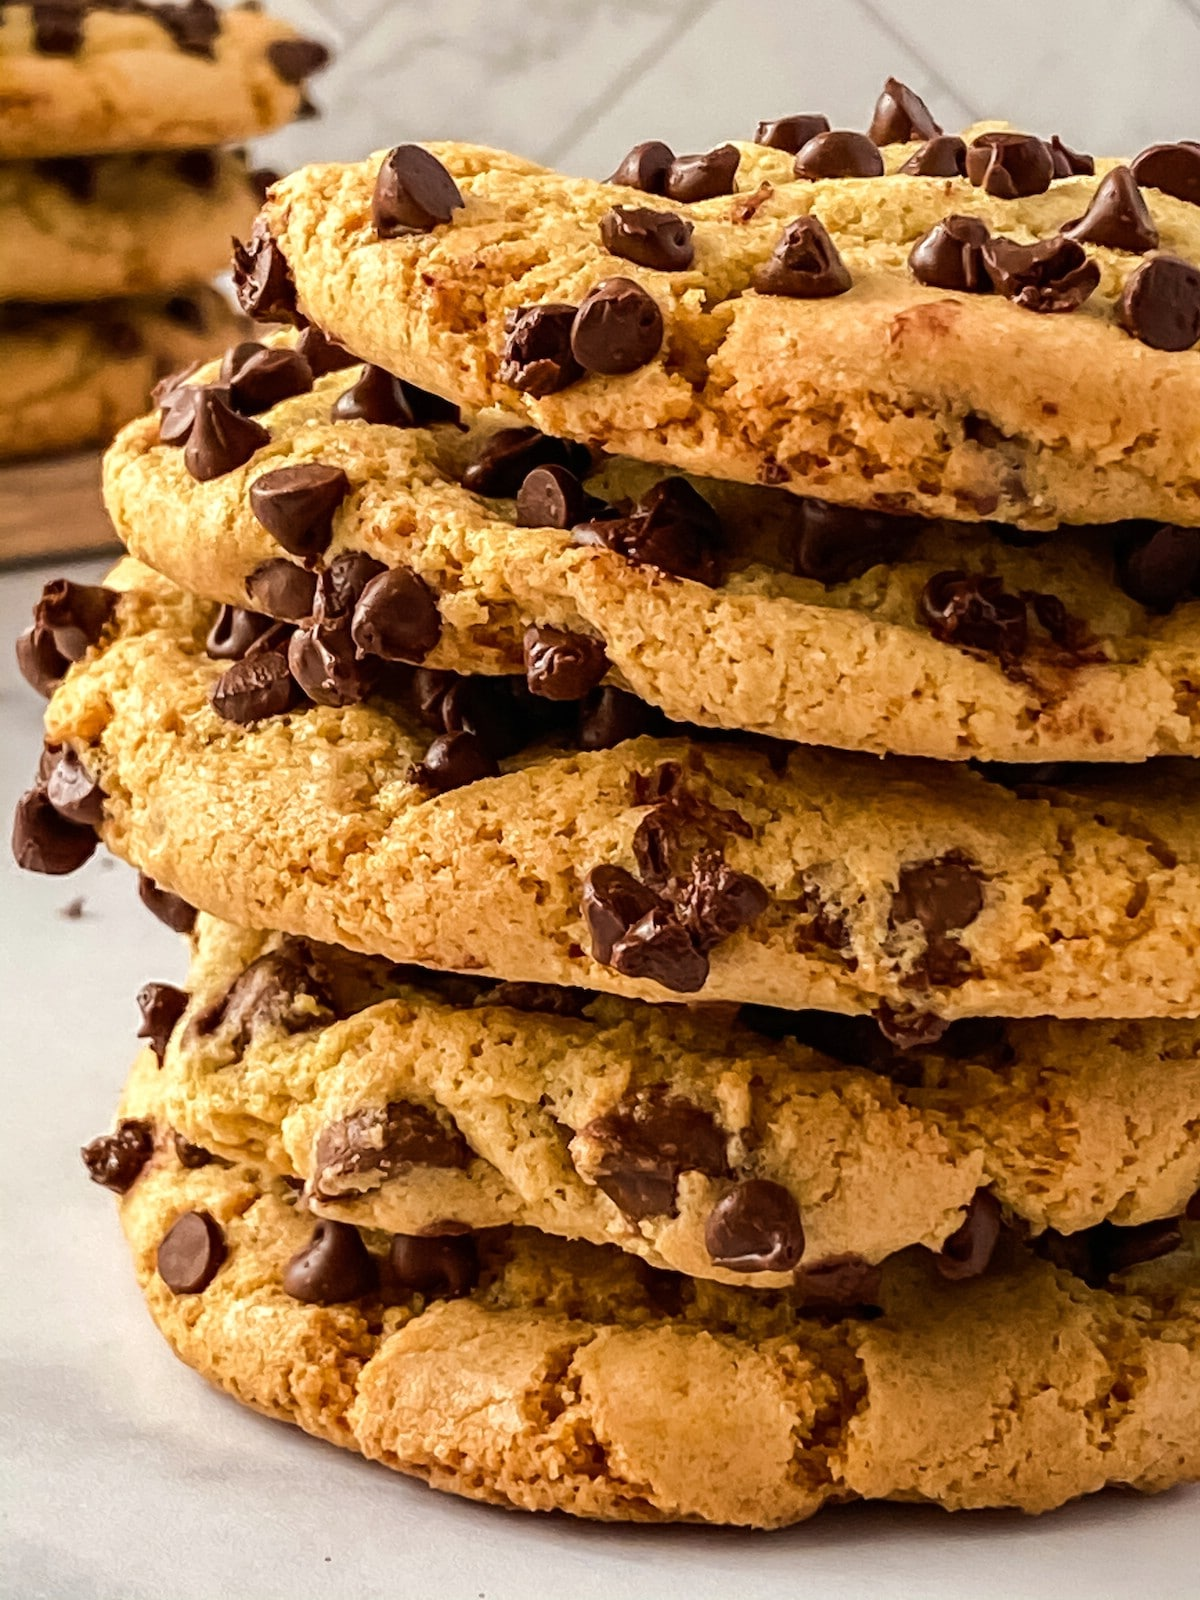 Tall stack of chocolate chip cookies